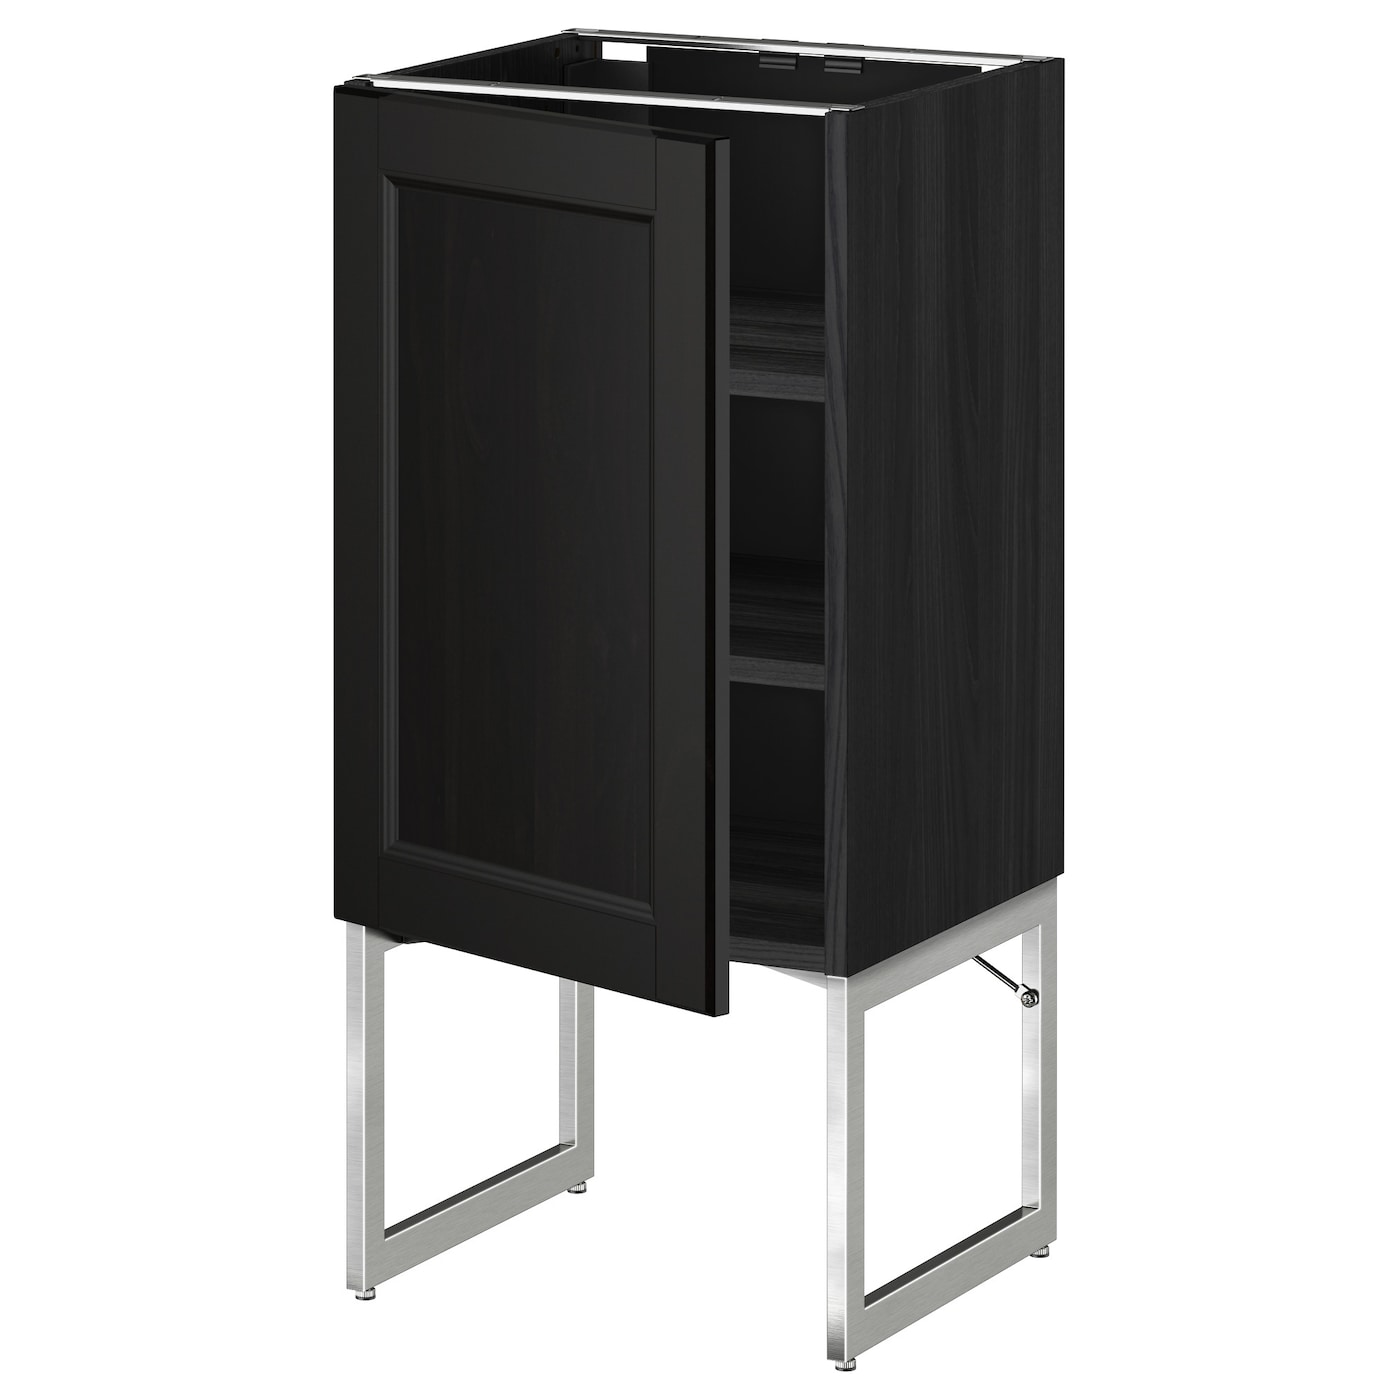 Metod Base Cabinet With Shelves Black Laxarby Black Brown 40x37x60 Cm Ikea